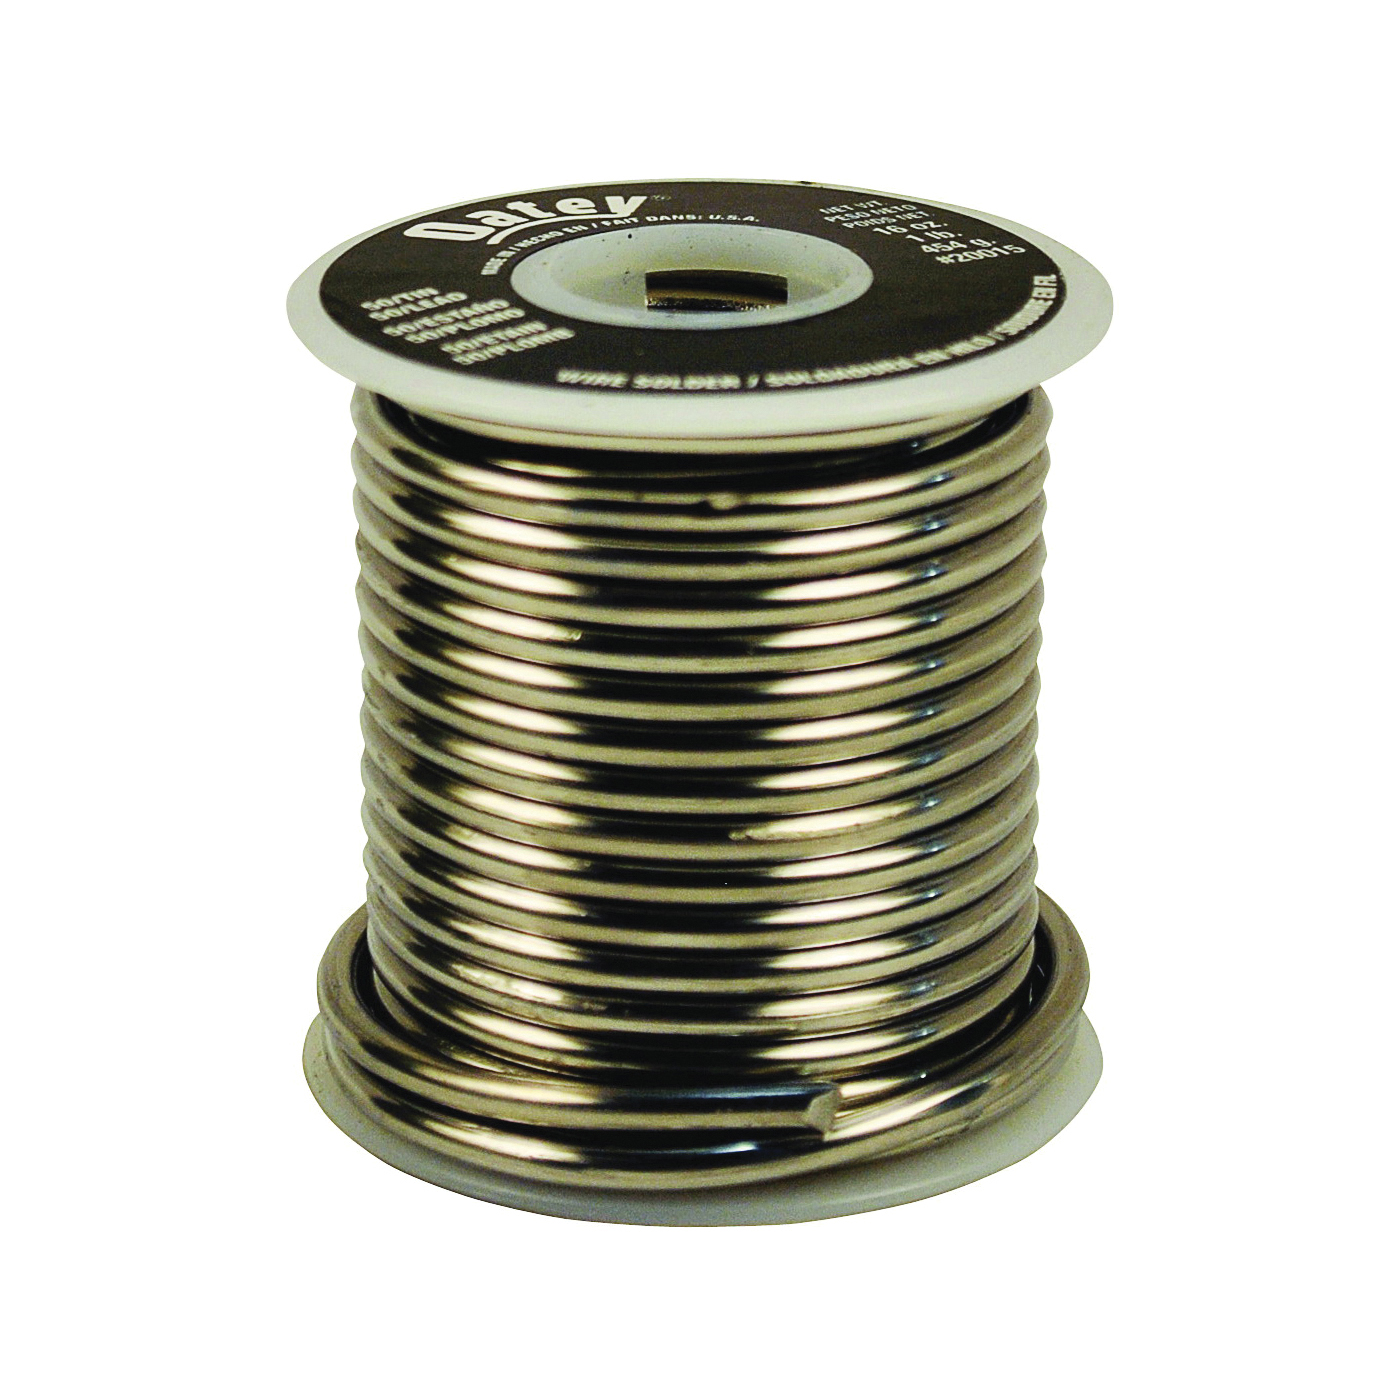 Picture of Oatey 20015 Leaded Solder, 1 lb Package, Solid, Silver, 361 to 421 deg F Melting Point